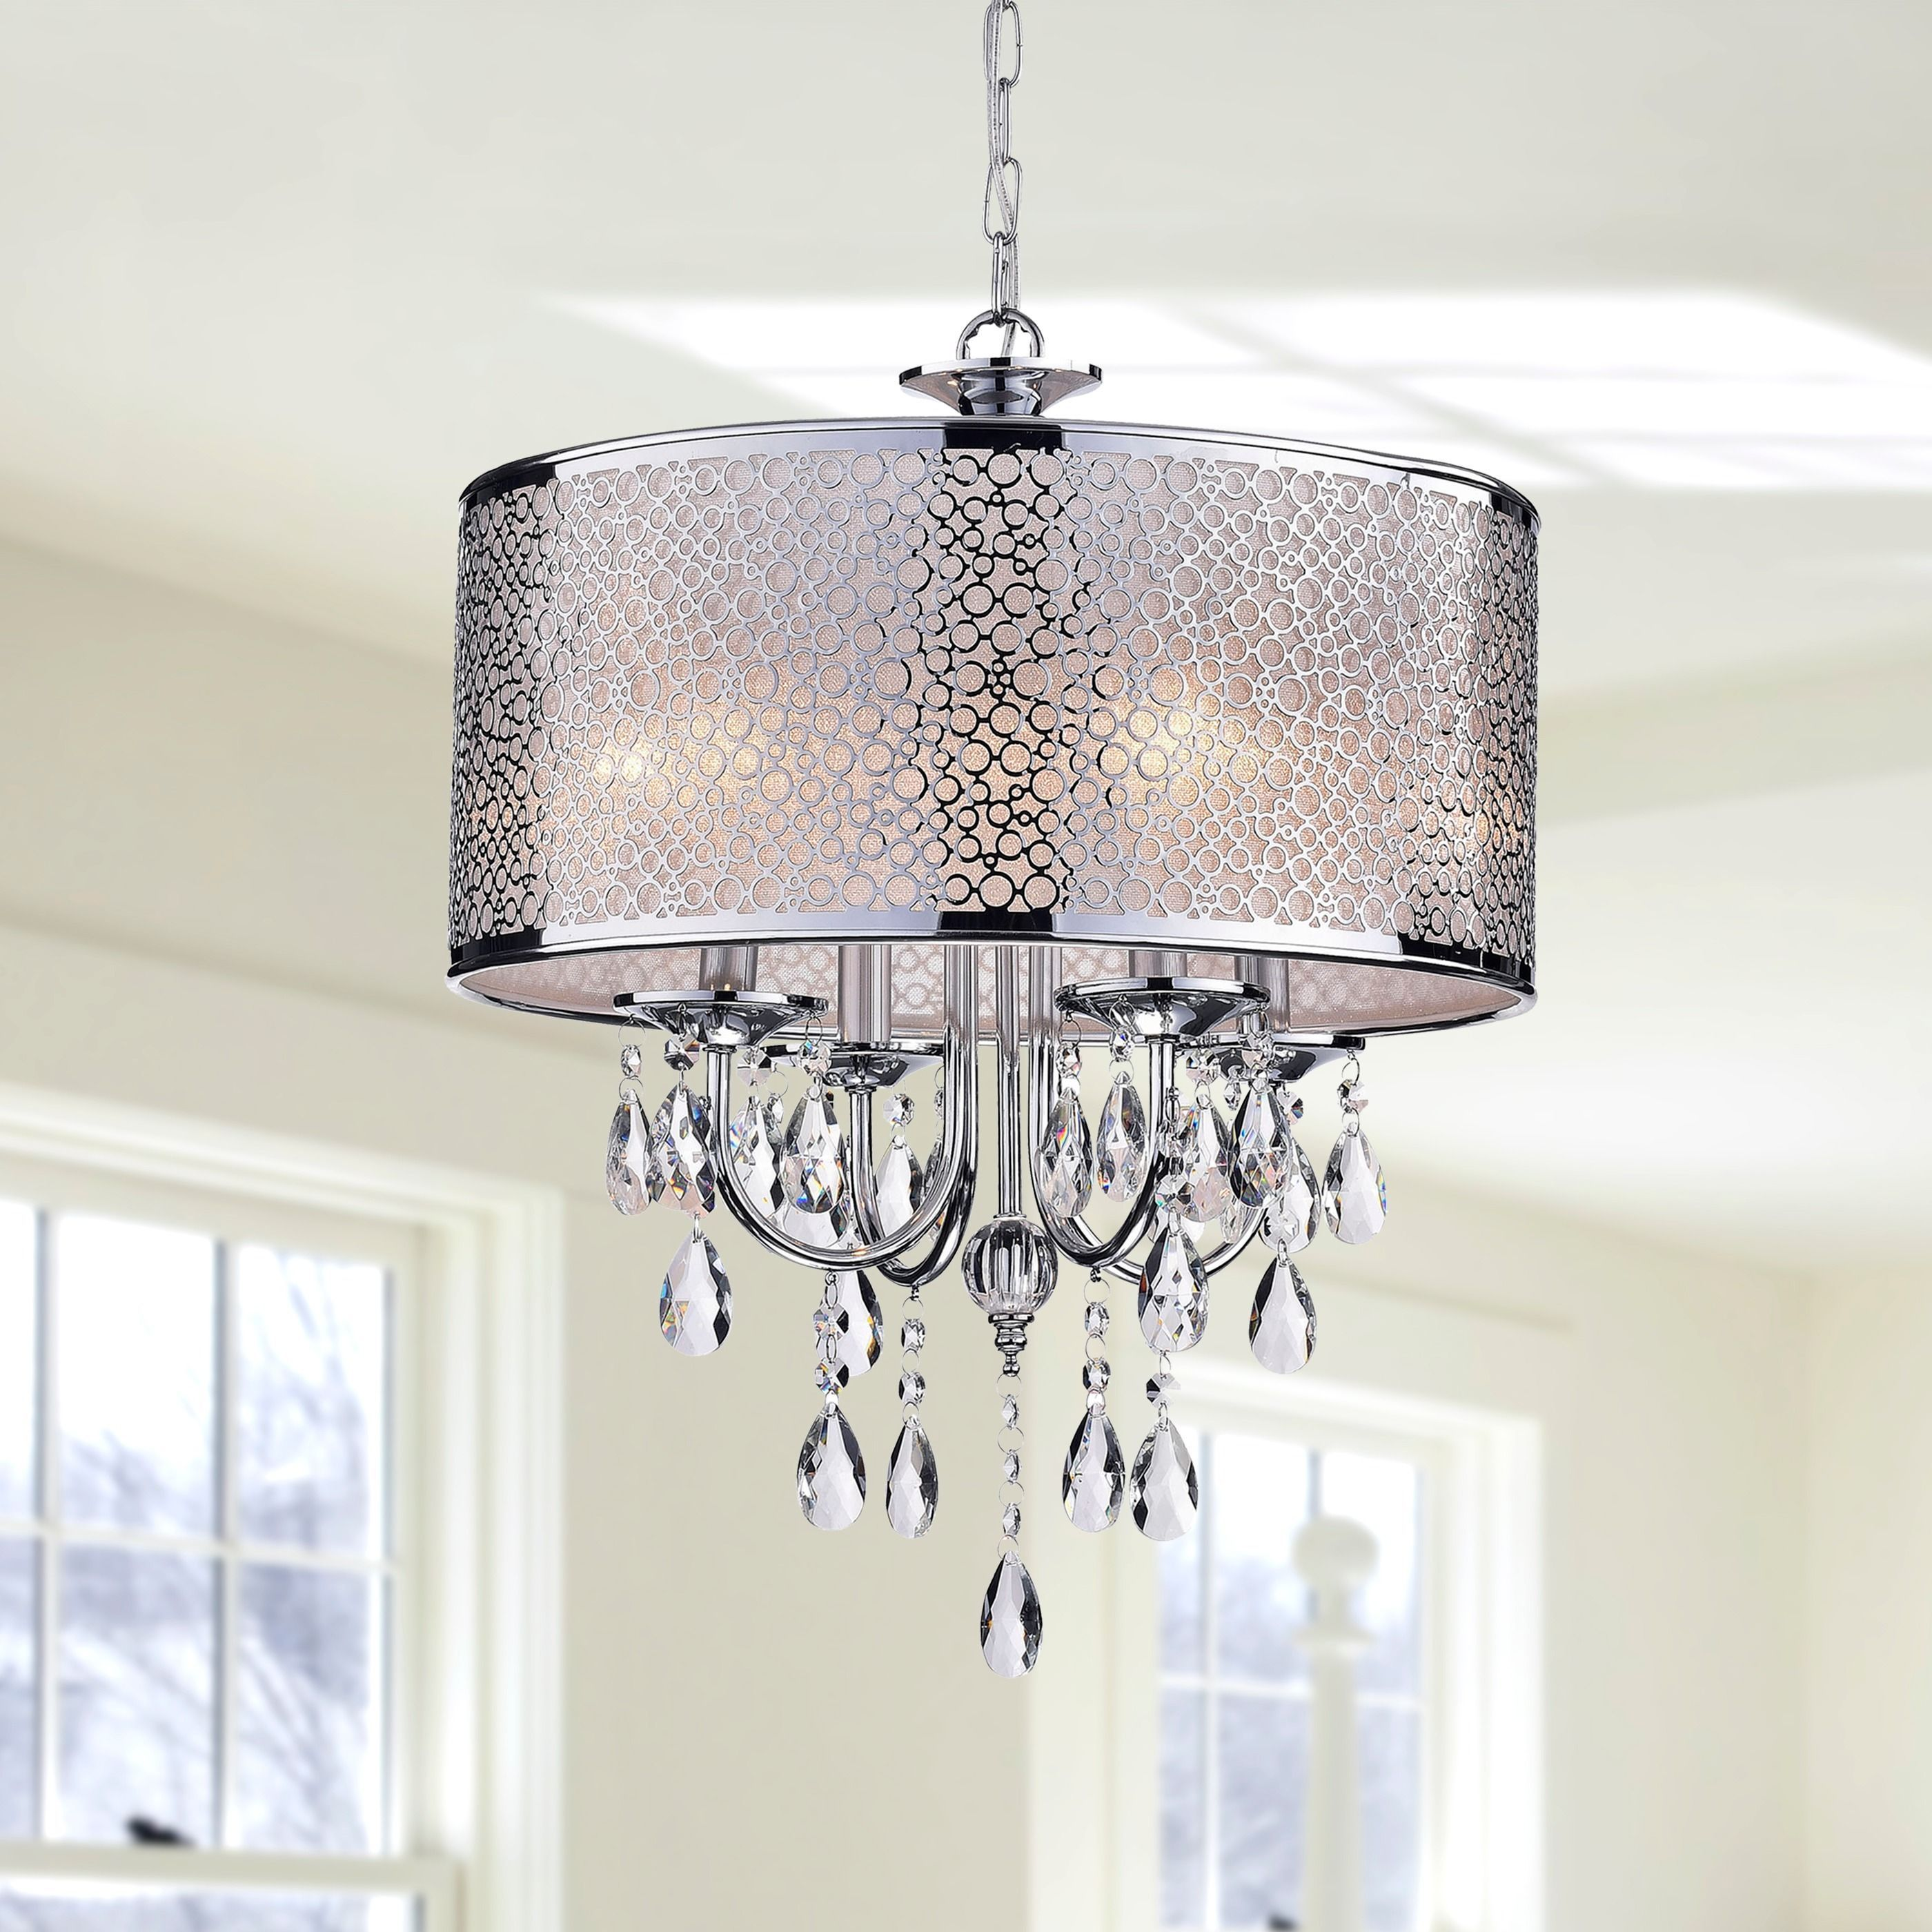 The Clear Crystal And White Shade Adds Elegance To This Lighting Fixture Coalesces Style With